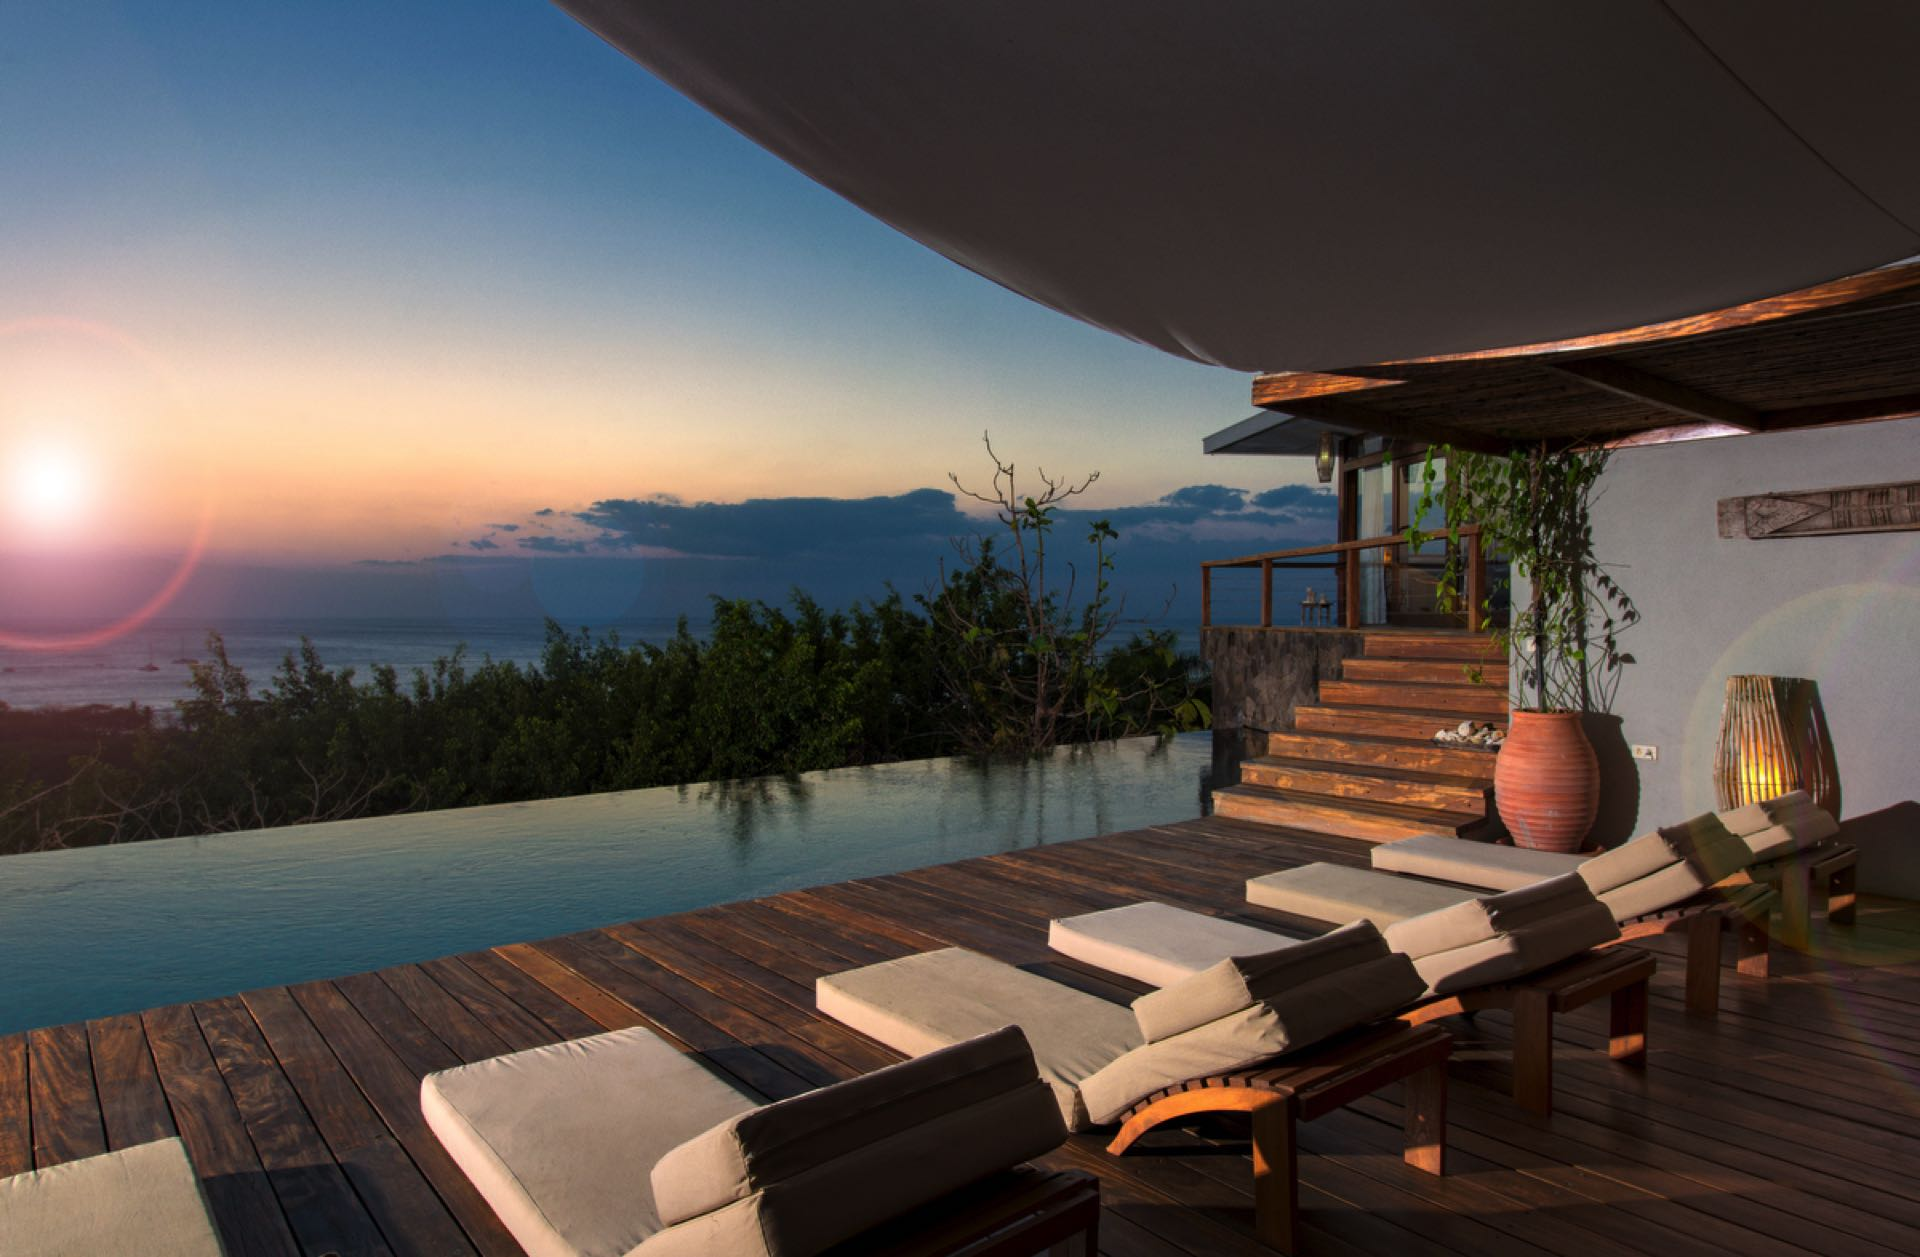 Luxury accommodations with a breathtaking view